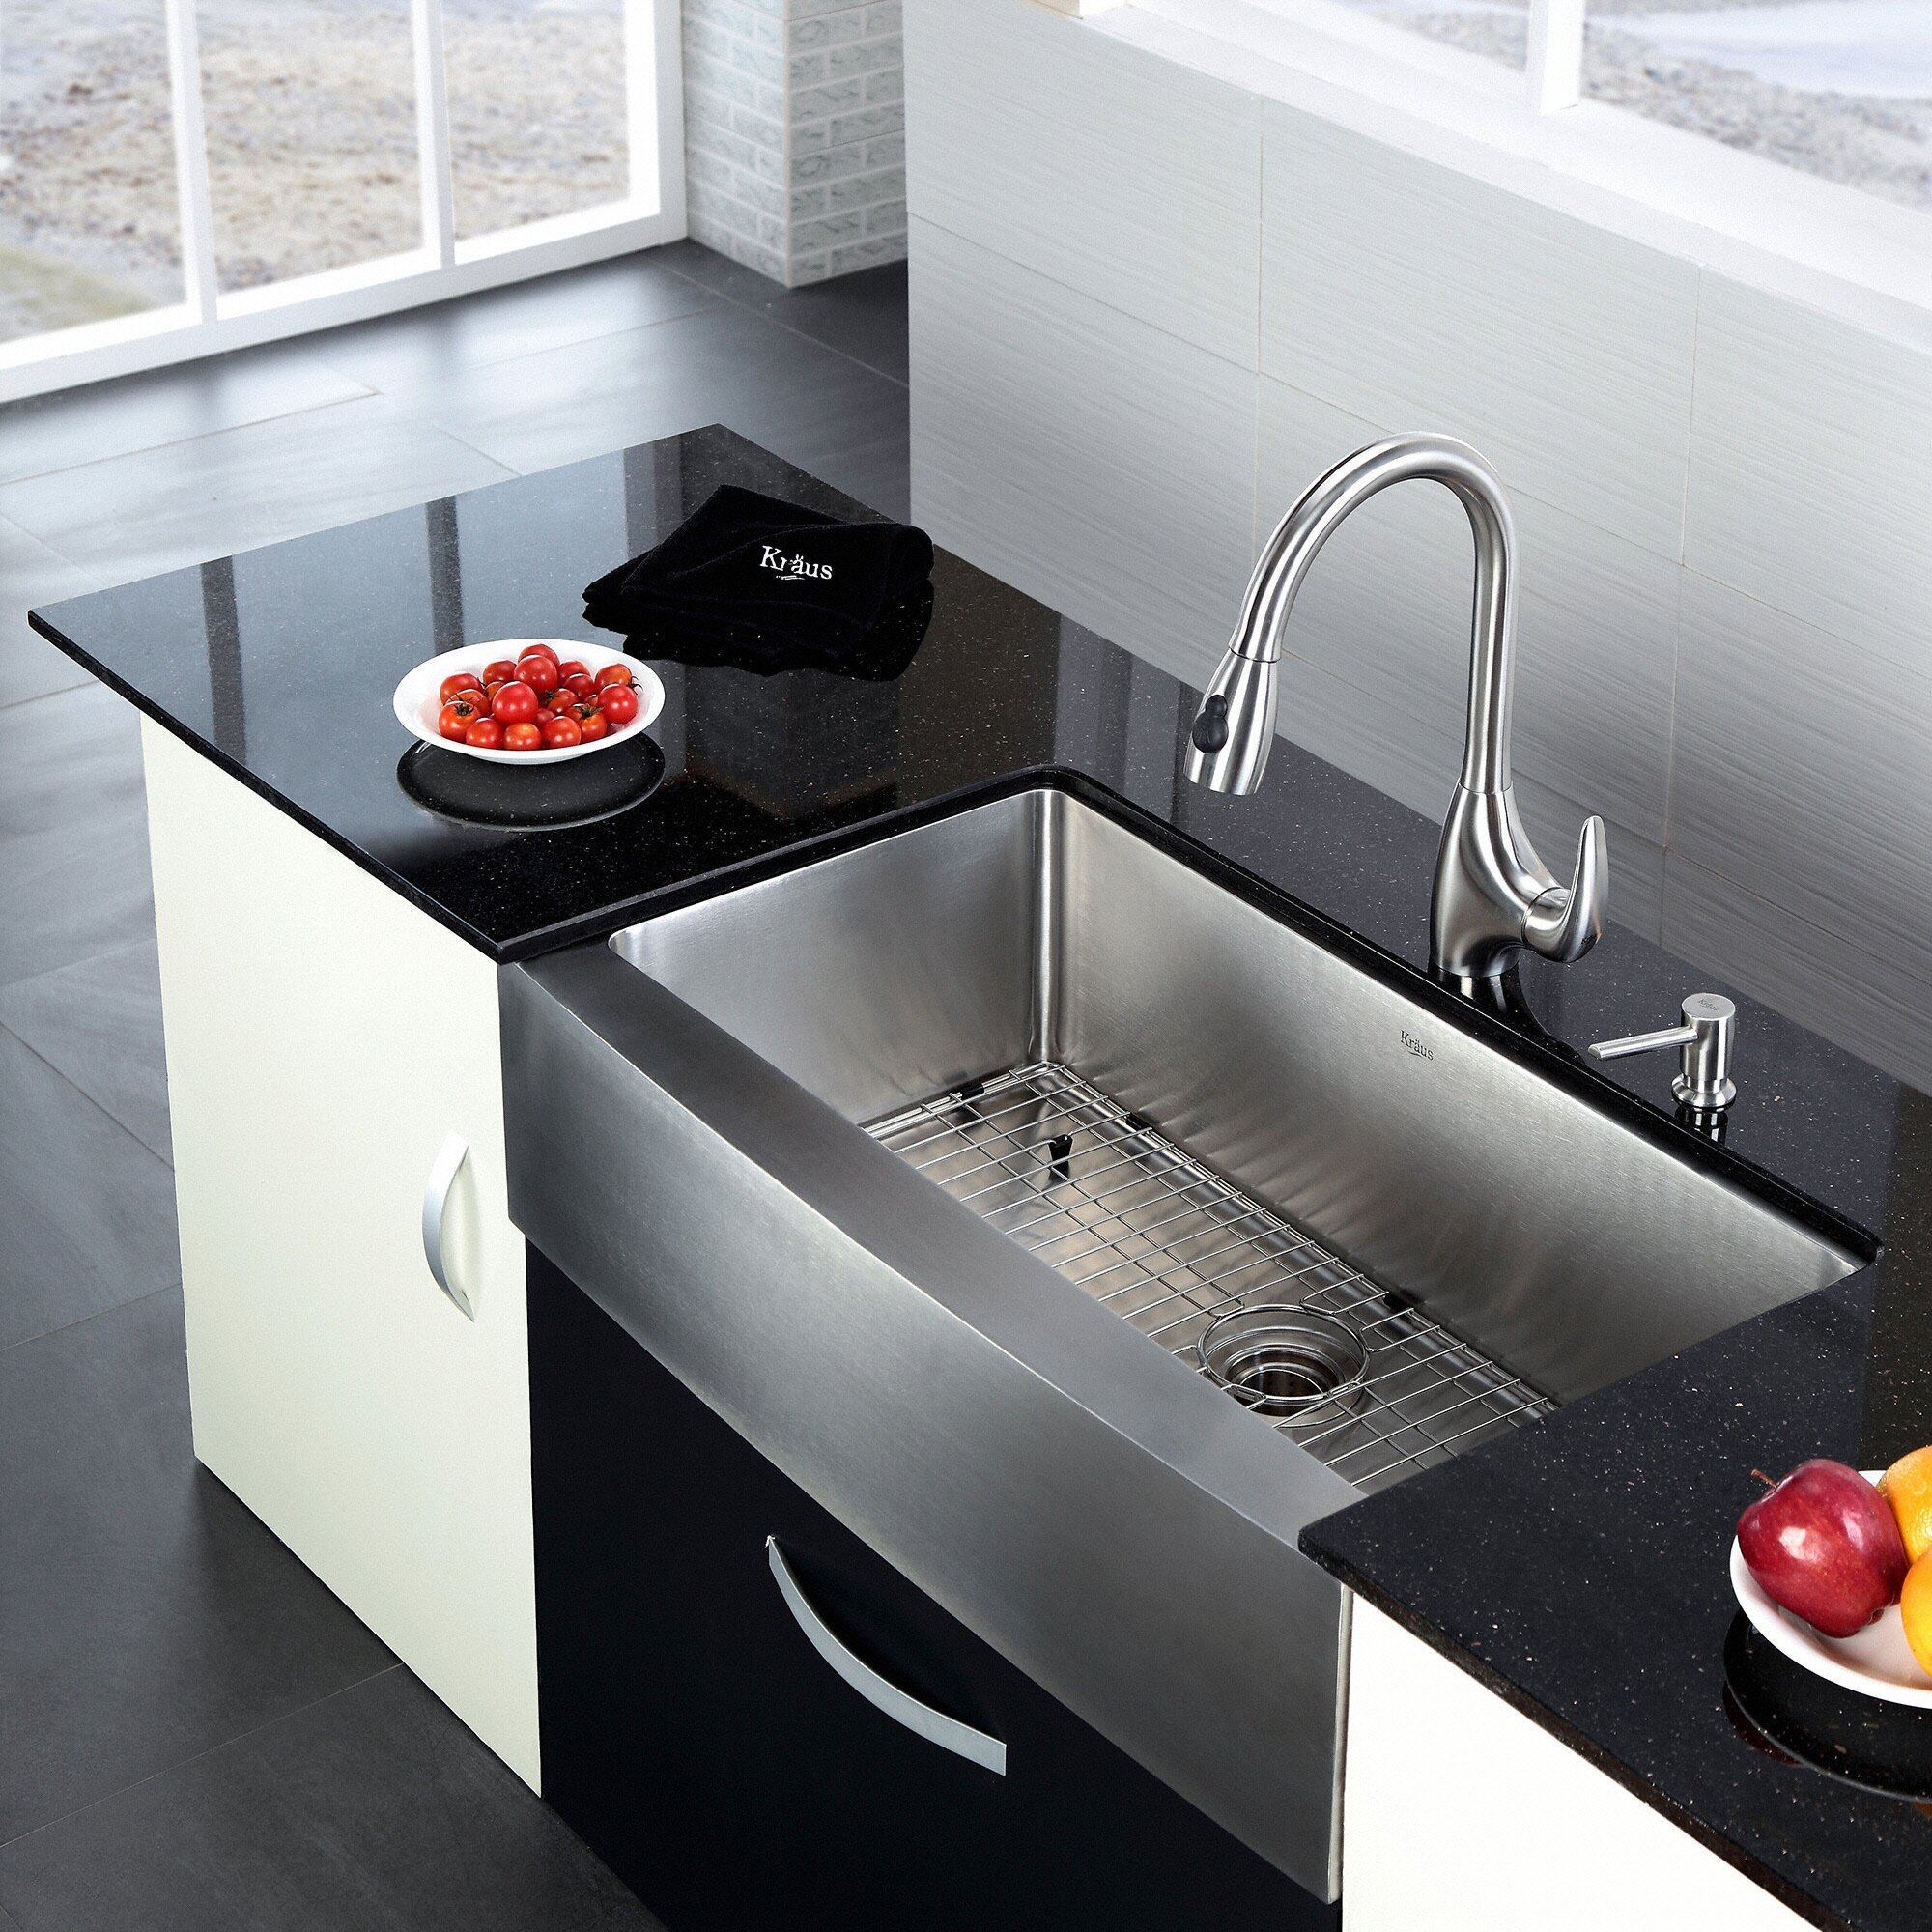 "Kitchen Sink Kraus: Kraus 35.88"" X 20.75"" Farmhouse Kitchen Sink & Reviews"